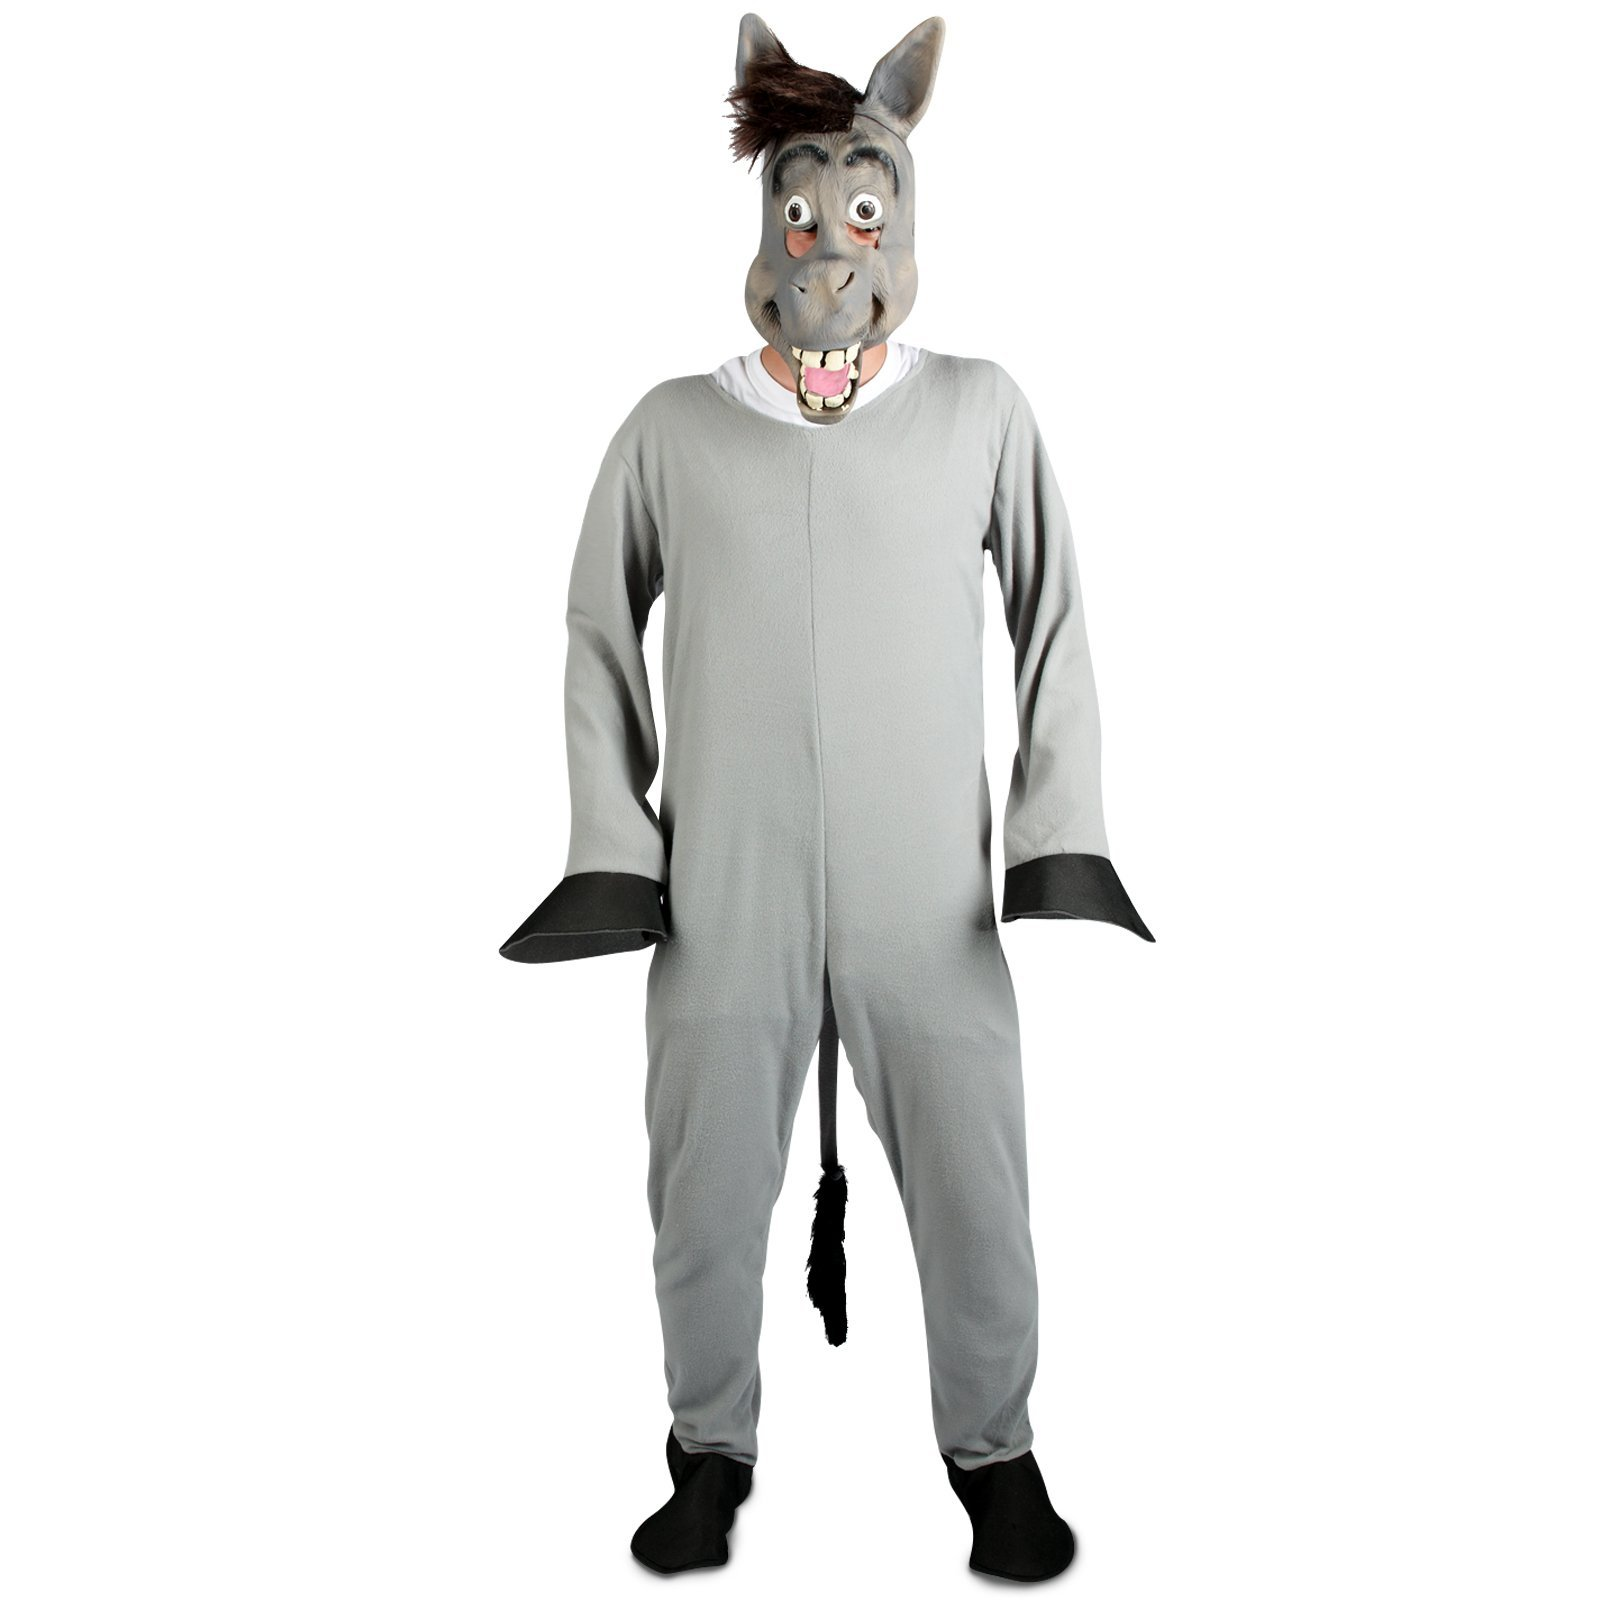 Shrek Forever After - Donkey Deluxe Adult Costume